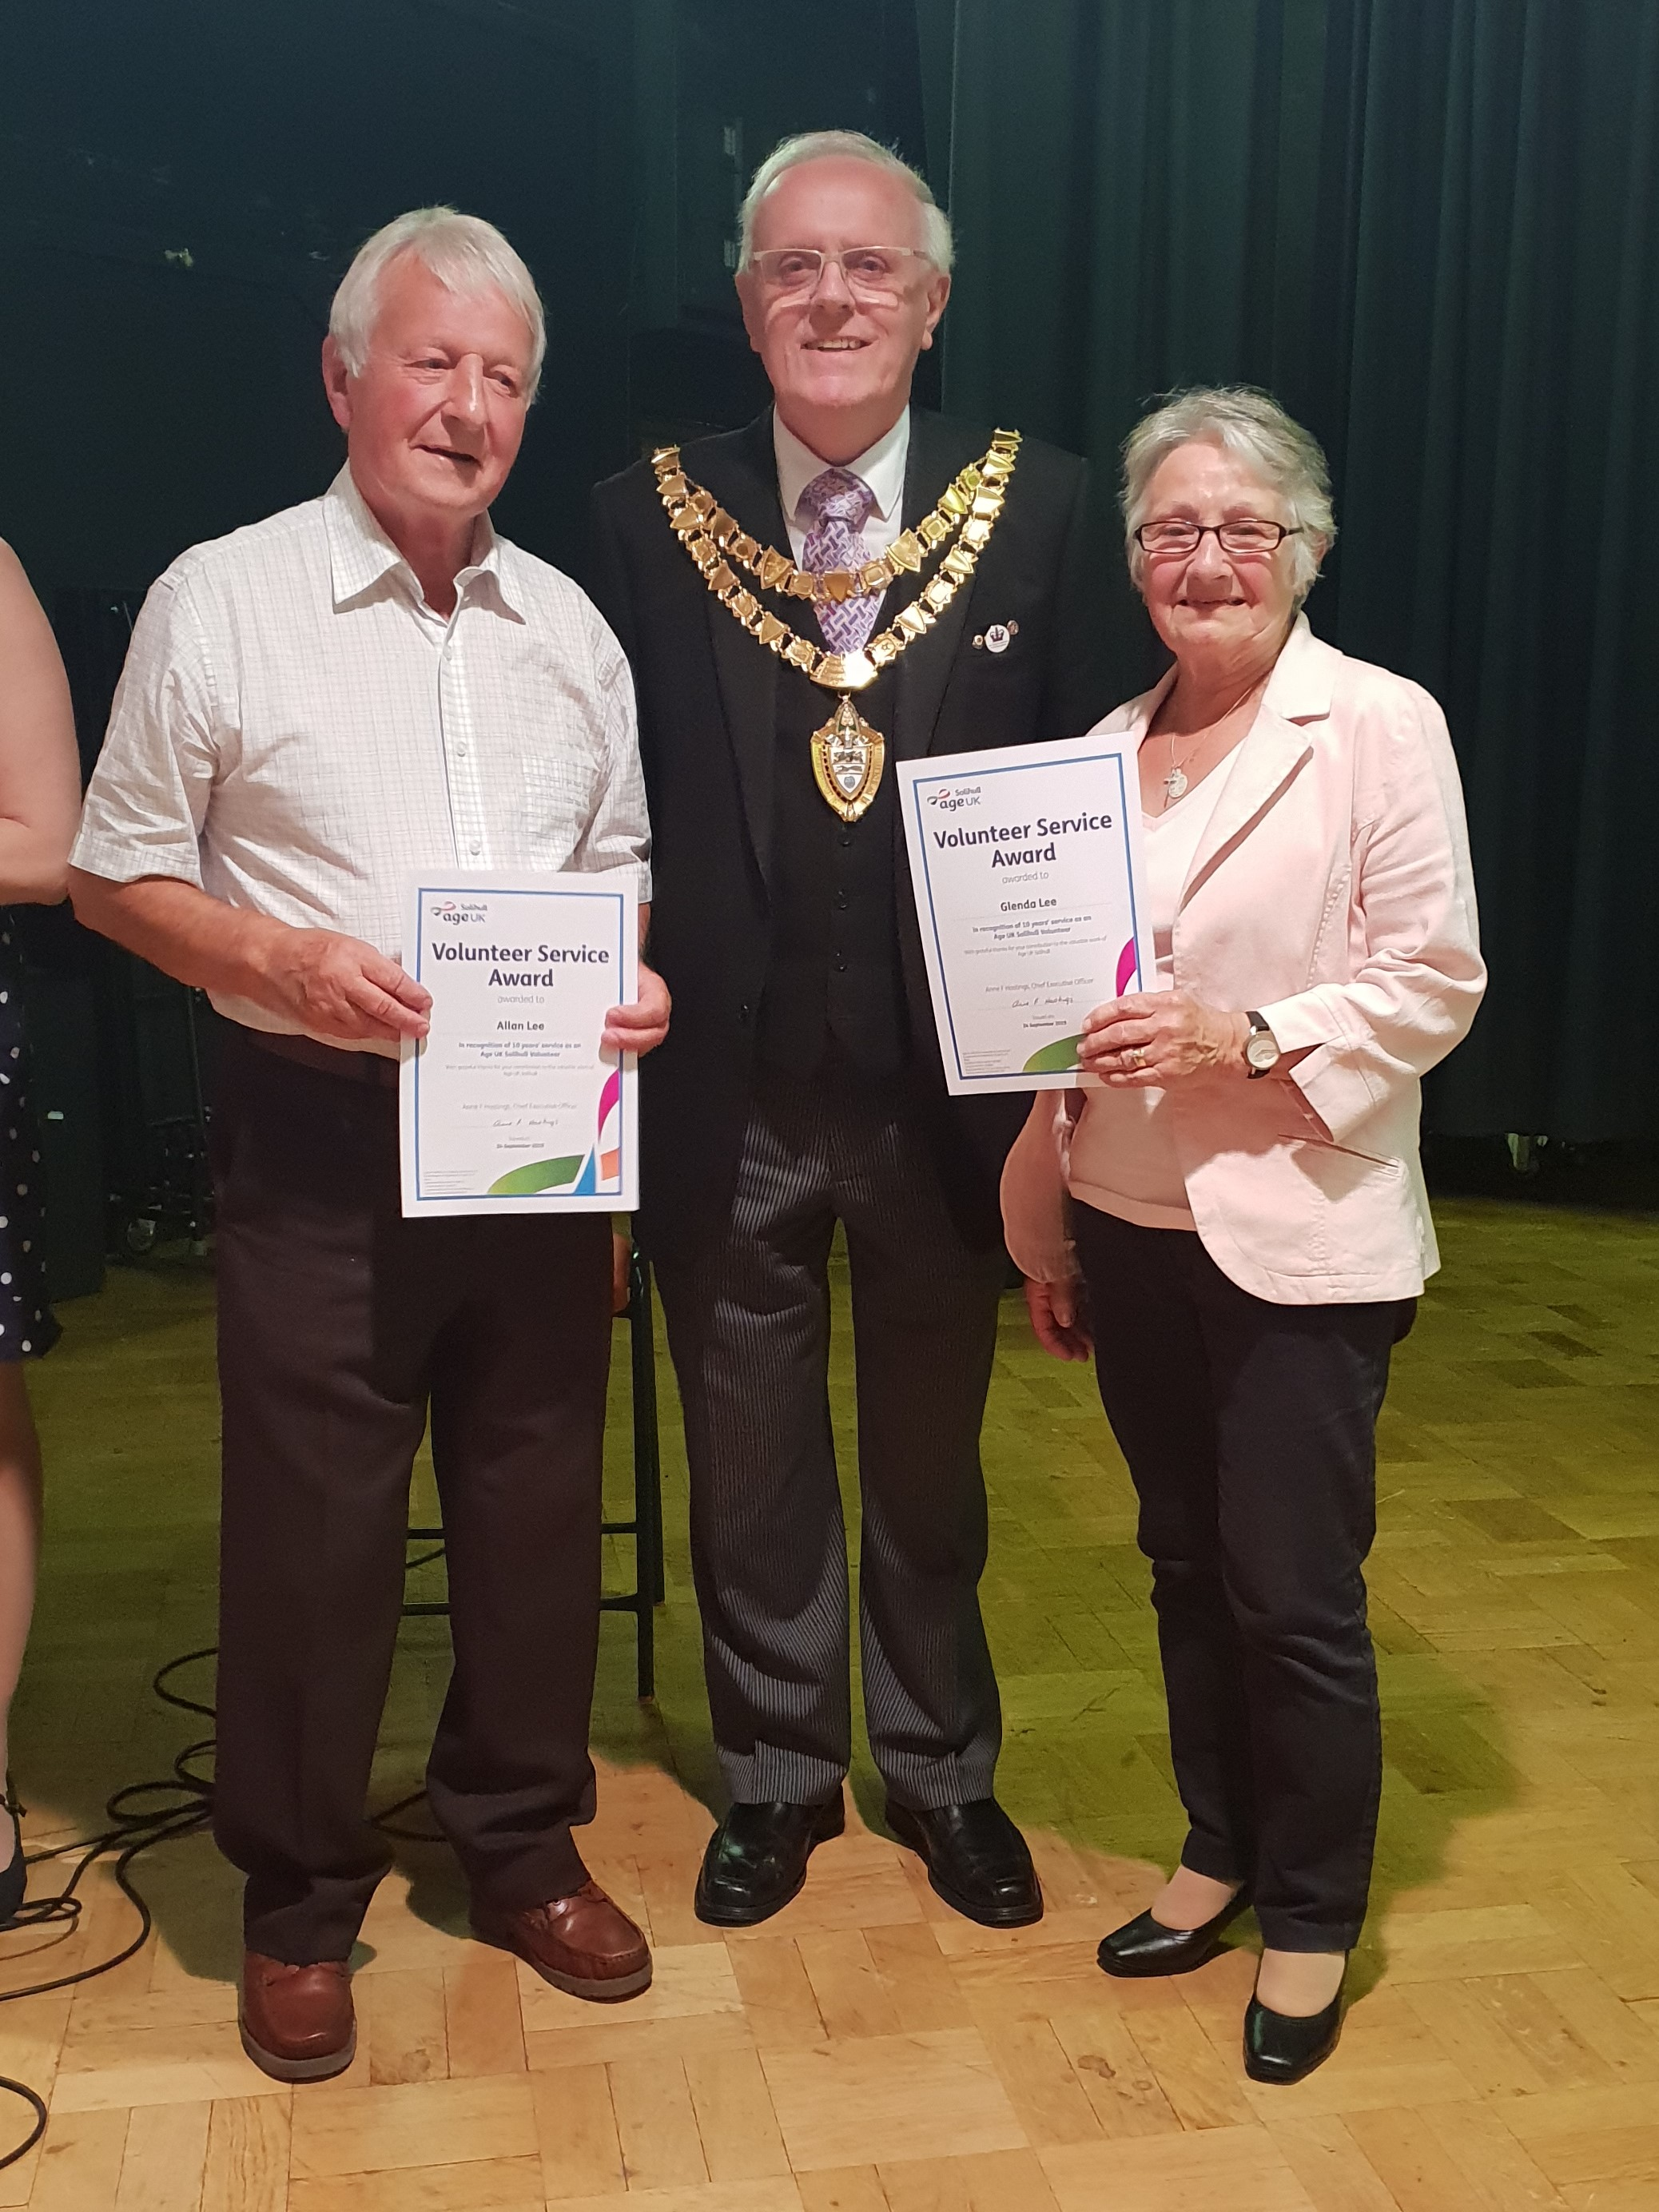 Two people standing next either side of the Mayor of Solihull, holding certificates to mark 10 years' volunteering for Age UK Solihull